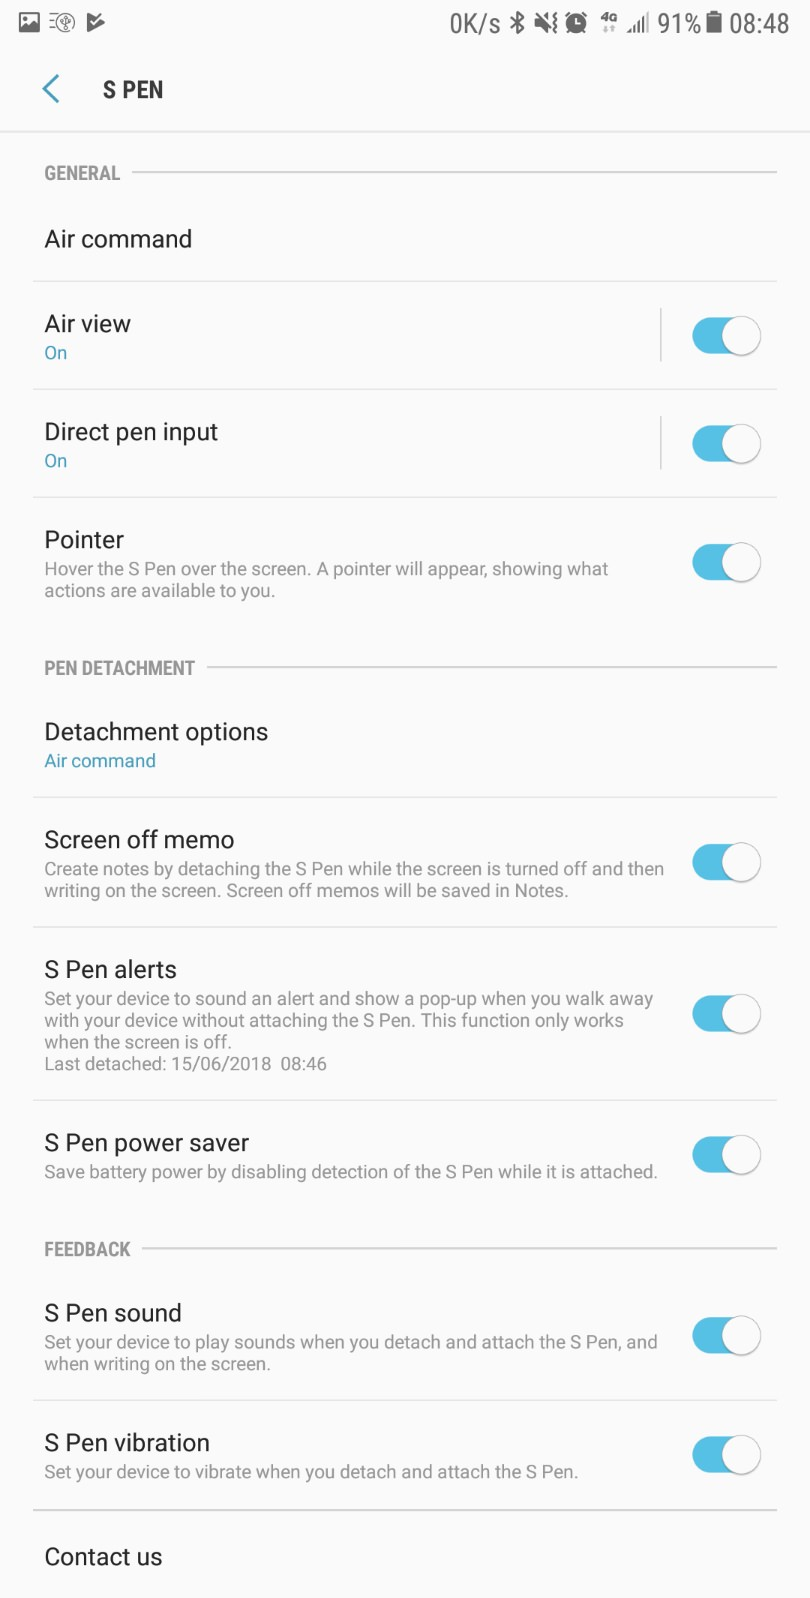 Refined Nougat 7.0 ROM Note 7 FE Port for Galaxy Note 4 Mohamedovic 11